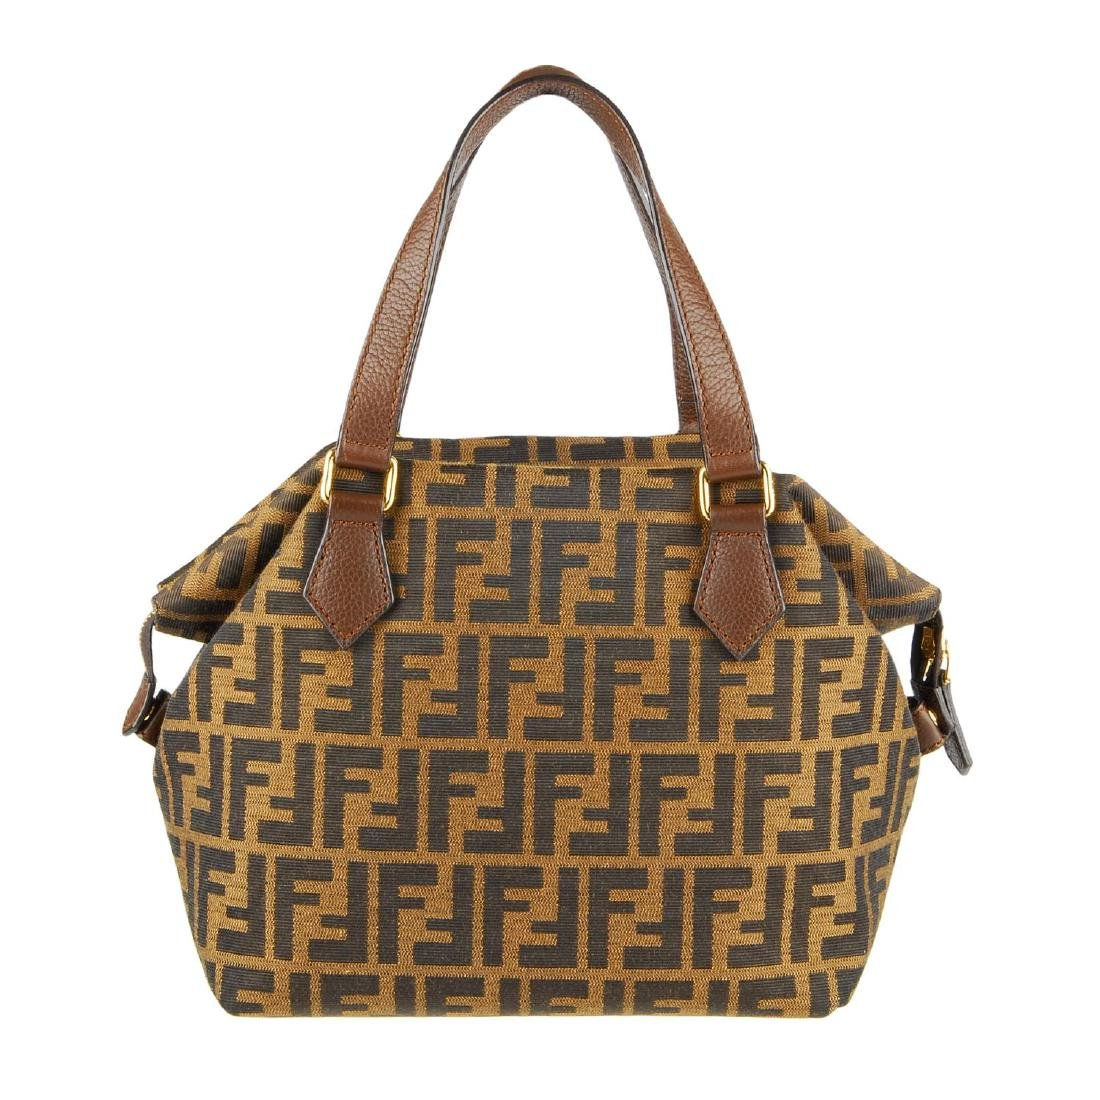 FENDI - a Zucca handbag. Crafted from maker's classic